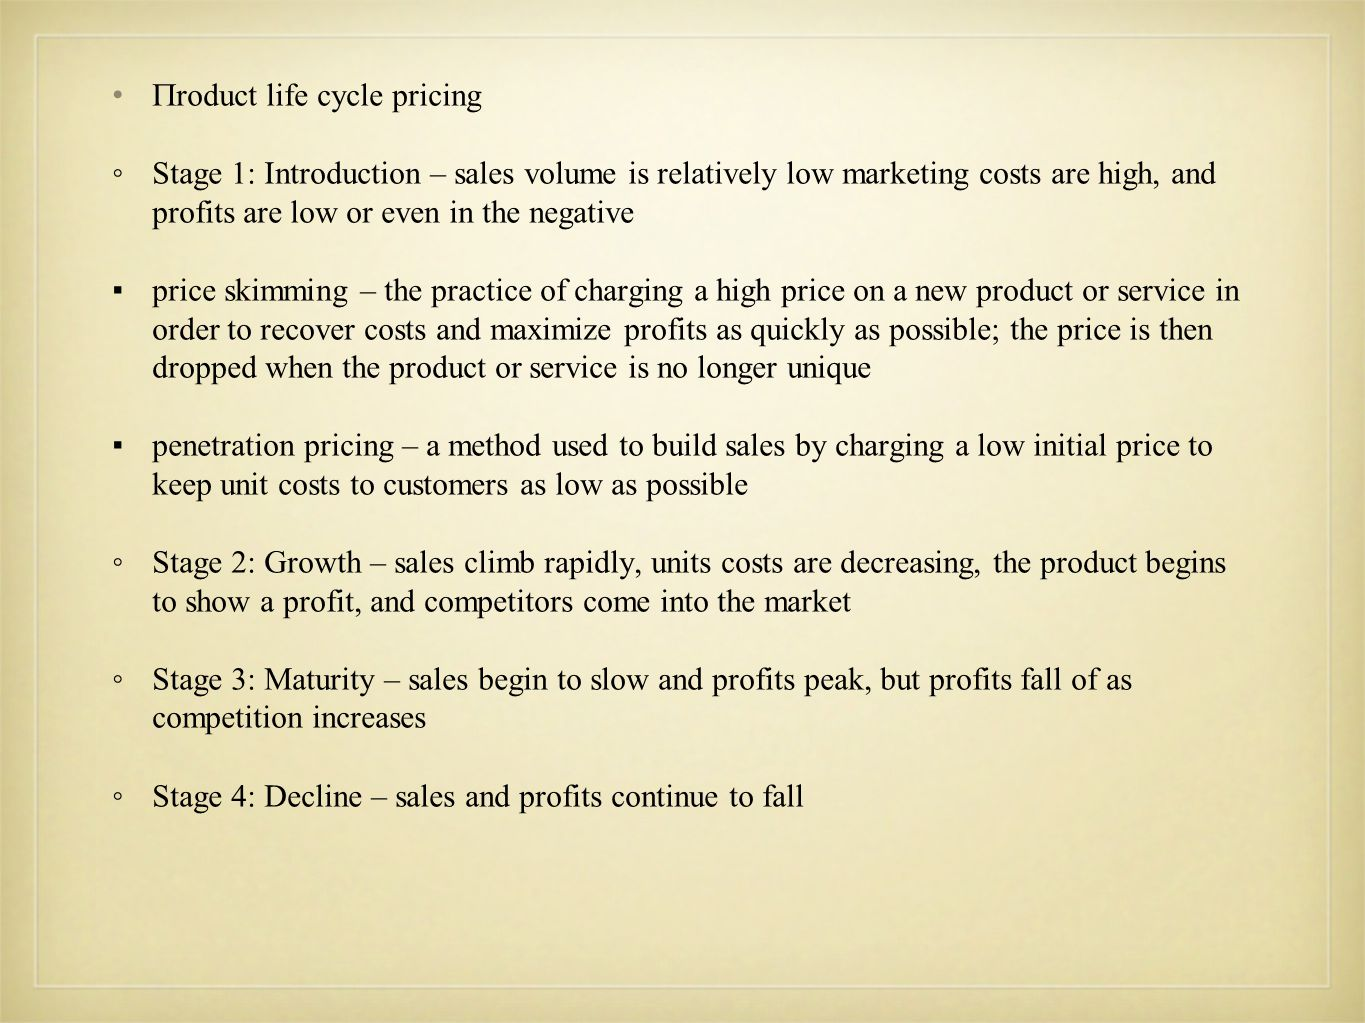 Pricing techniques ◦ Psychological pricing – a pricing technique, most often used by retail businesses, that are based on the belief that customers perceptions of a product are strongly influenced by price, odd/even pricing, price lining, promotional pricing, multiple-unit pricing, and bundle pricing ▪ prestige pricing – a pricing technique in which higher-than-average prices are used to suggest status and prestige to the customer ▪ odd/even pricing – a pricing technique to which odd-numbered prices are used to suggest bargains ▪ price lining – a pricing technique in which items in a certain category are priced the same ▪ promotional pricing – a pricing technique in which lower prices are offered for a limited period of time to stimulate sales ▪ multiple-unit pricing- a pricing technique in which items are priced in multiples ▪ bundle pricing – a pricing technique in which several complementary products are sold at a single price, which is lower than the price would be if each item was purchased separately